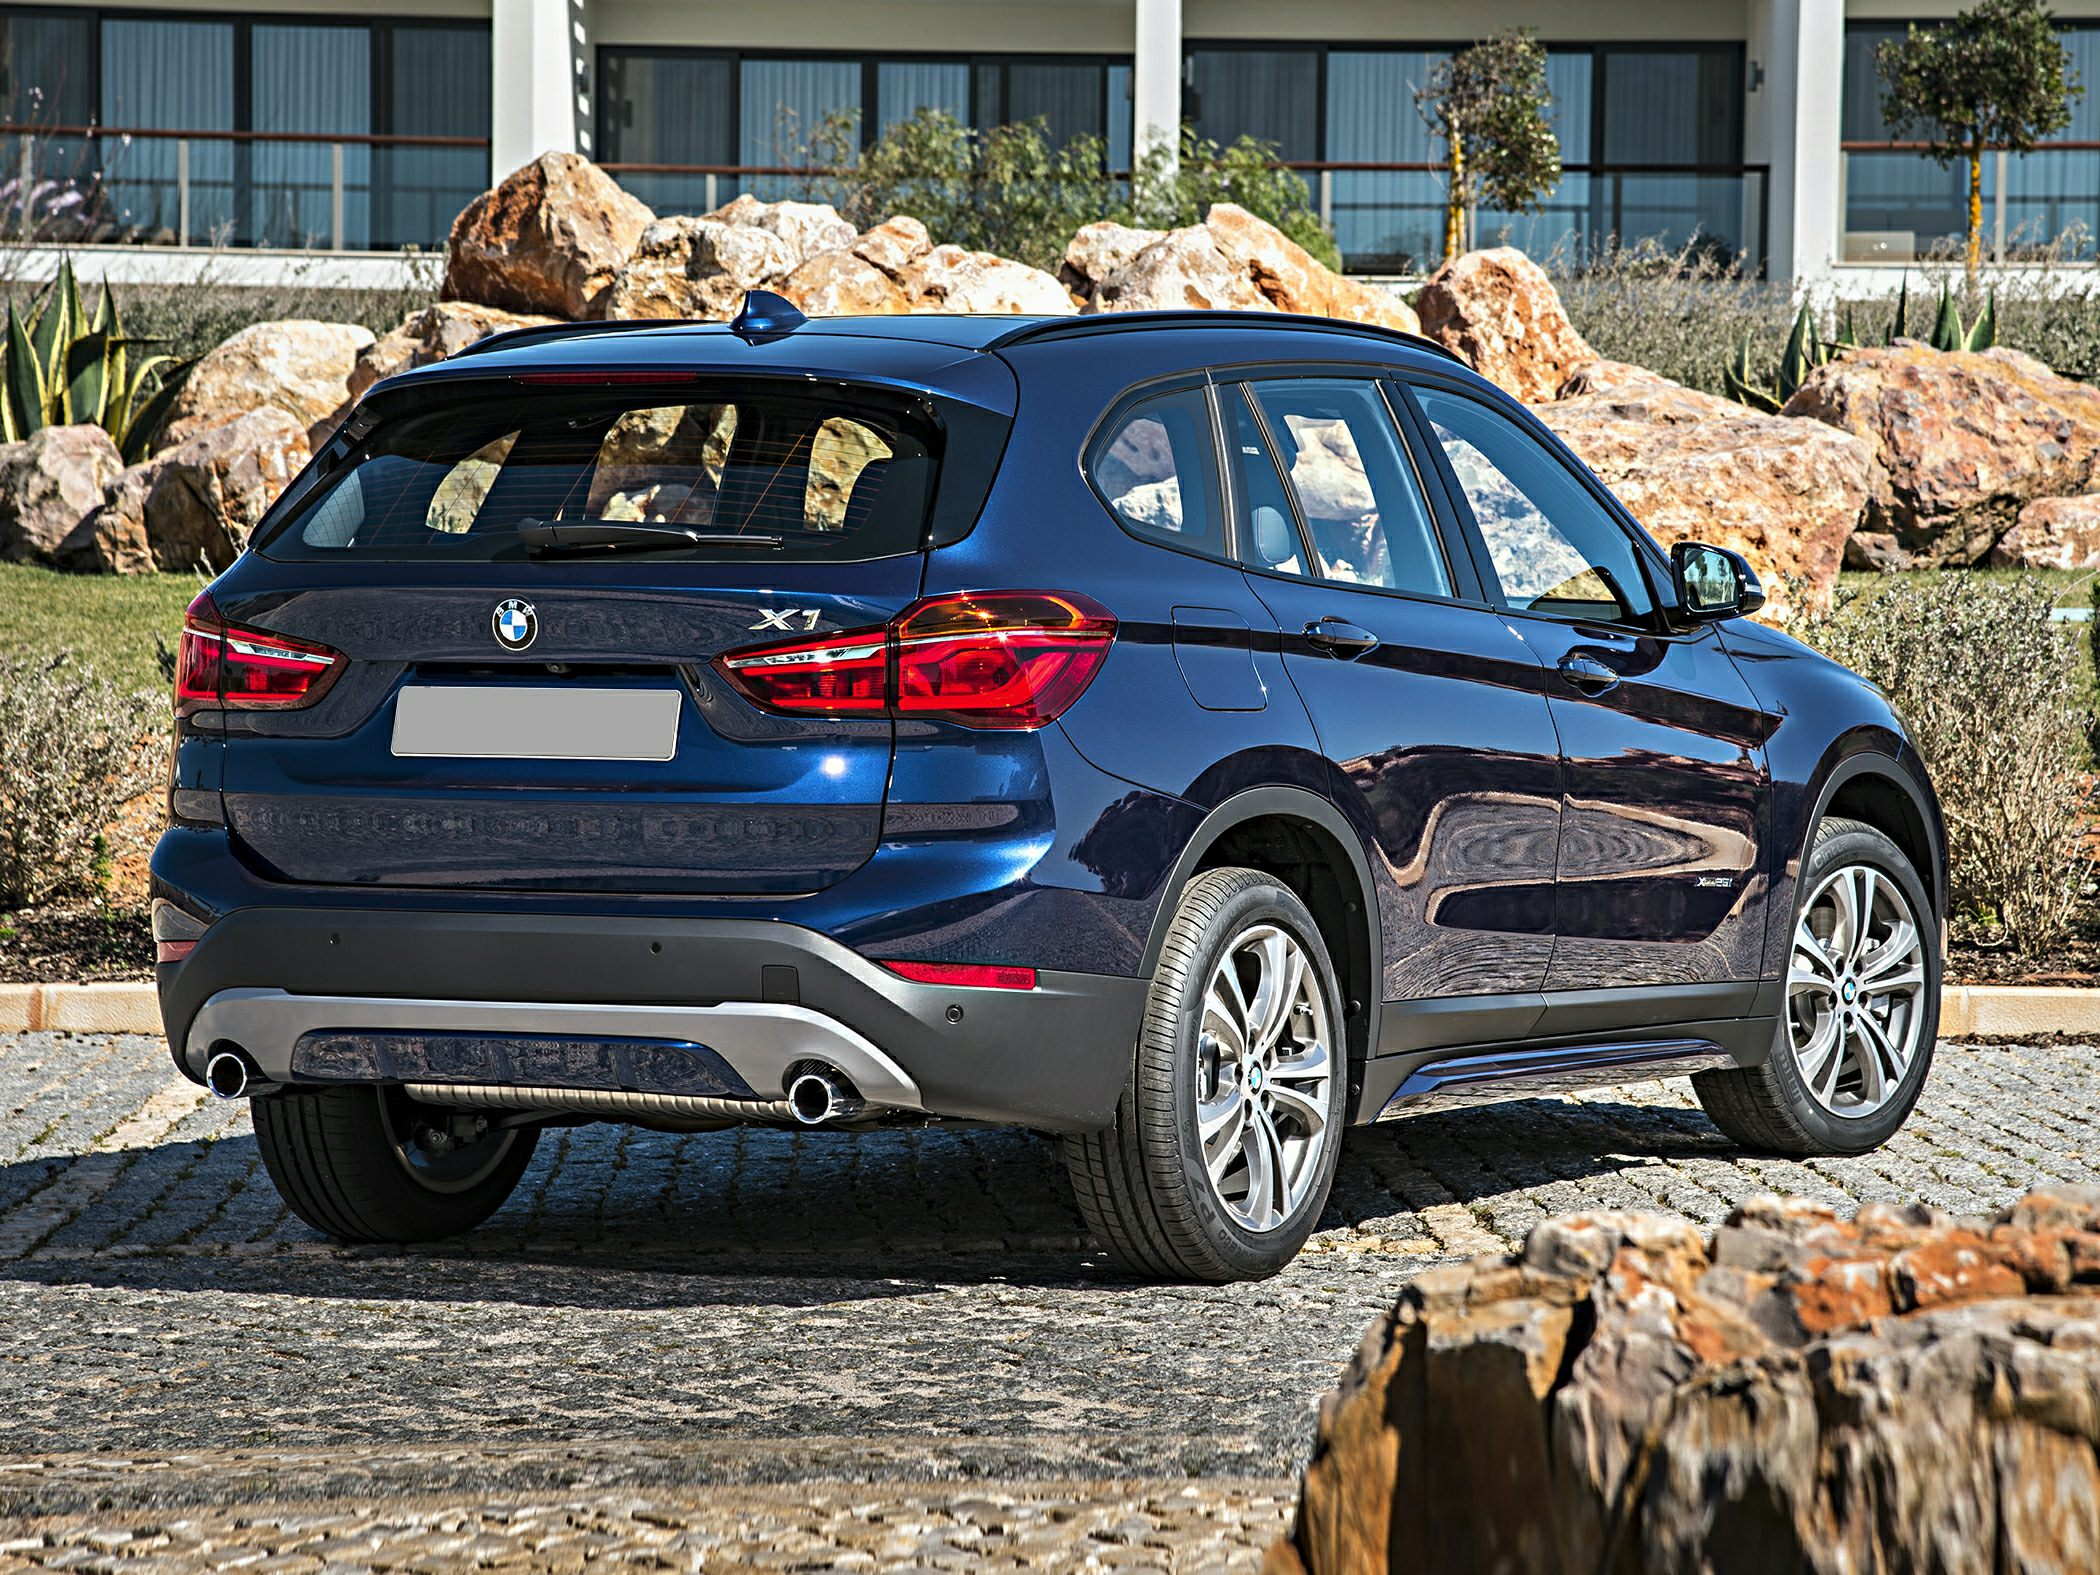 2017 BMW X1 Deals Prices Incentives  Leases Overview  CarsDirect